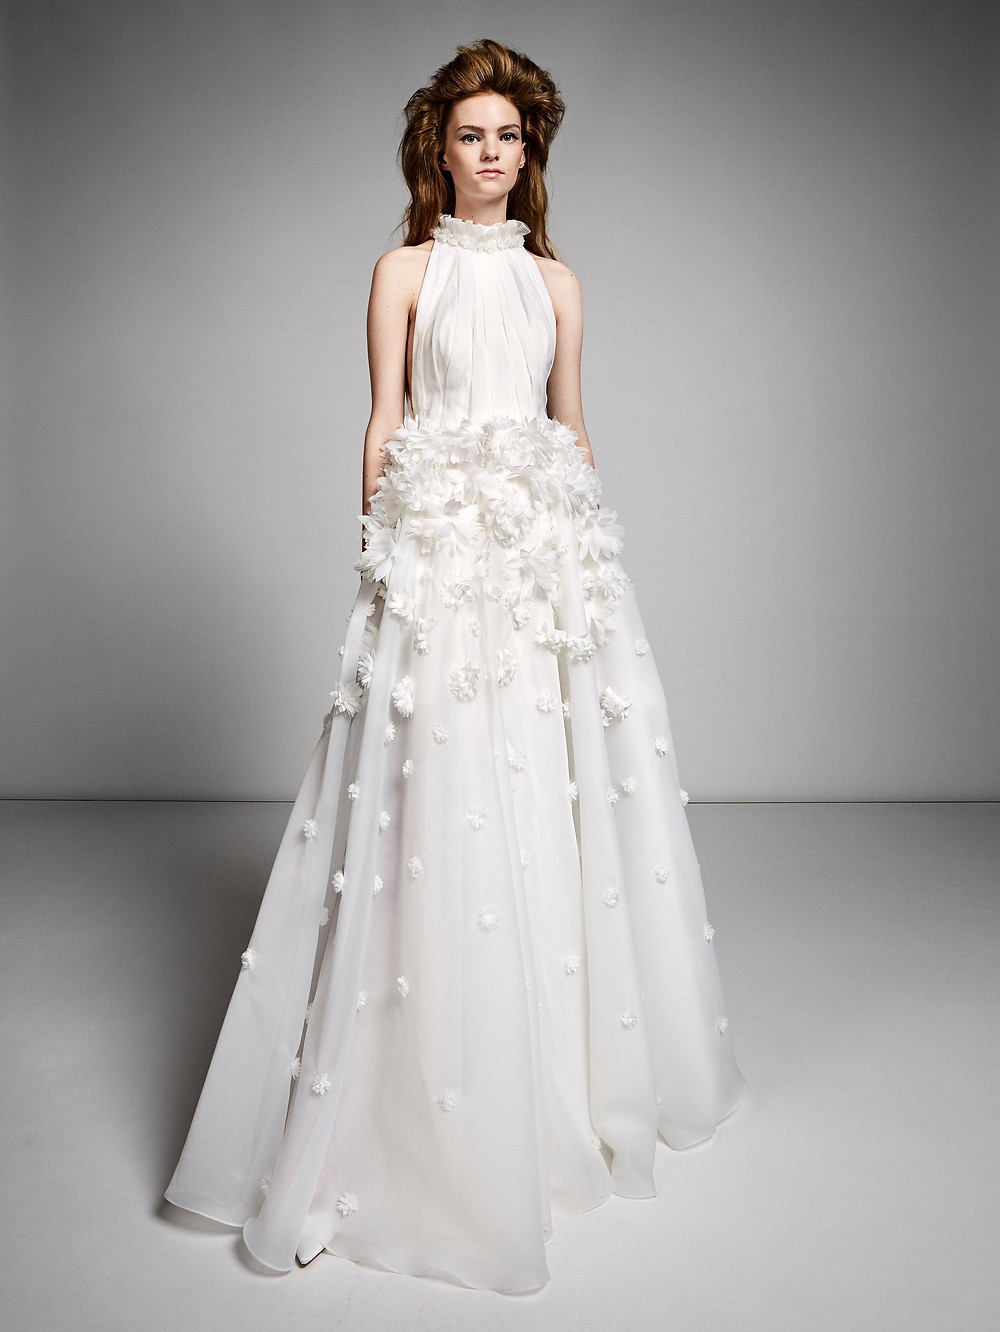 Weddinspired | 35+ Stylish Halterneck Wedding Dresses | Viktor & Rolf - From the F/W 2019 collection